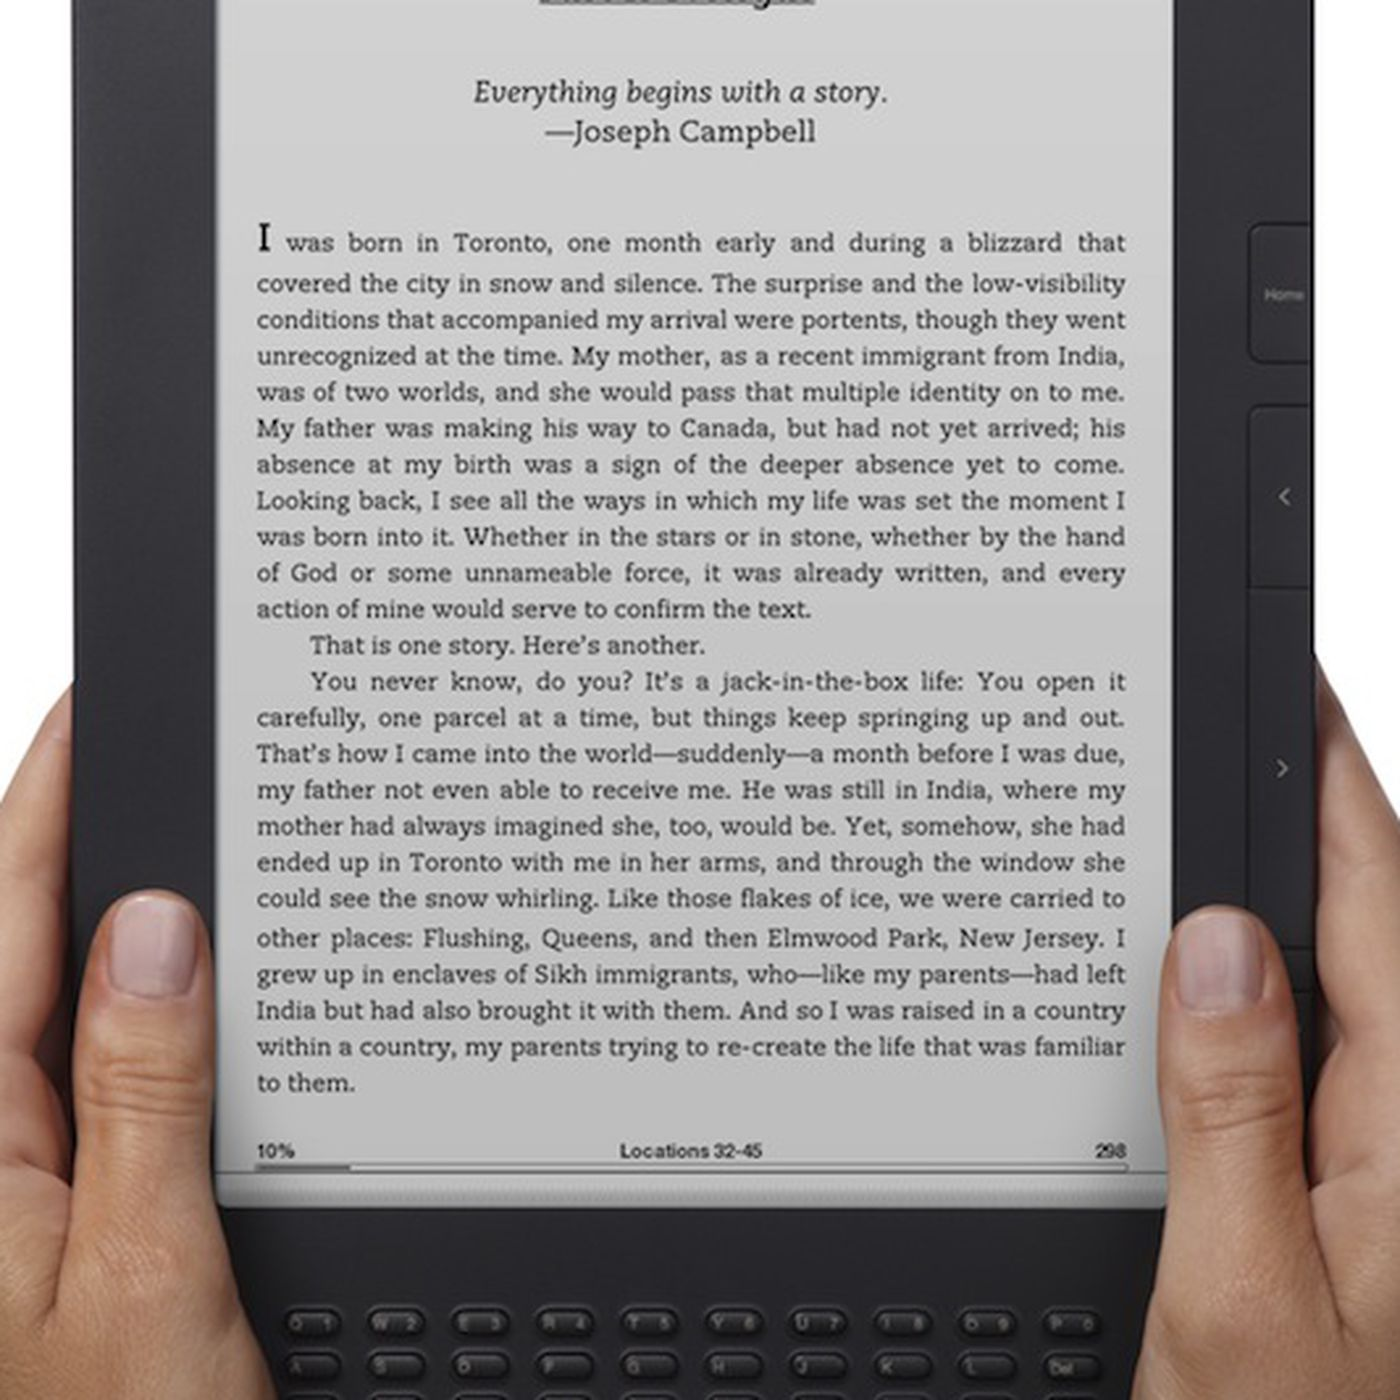 Amazon brings back long dormant Kindle DX, says it's 'excited' to do